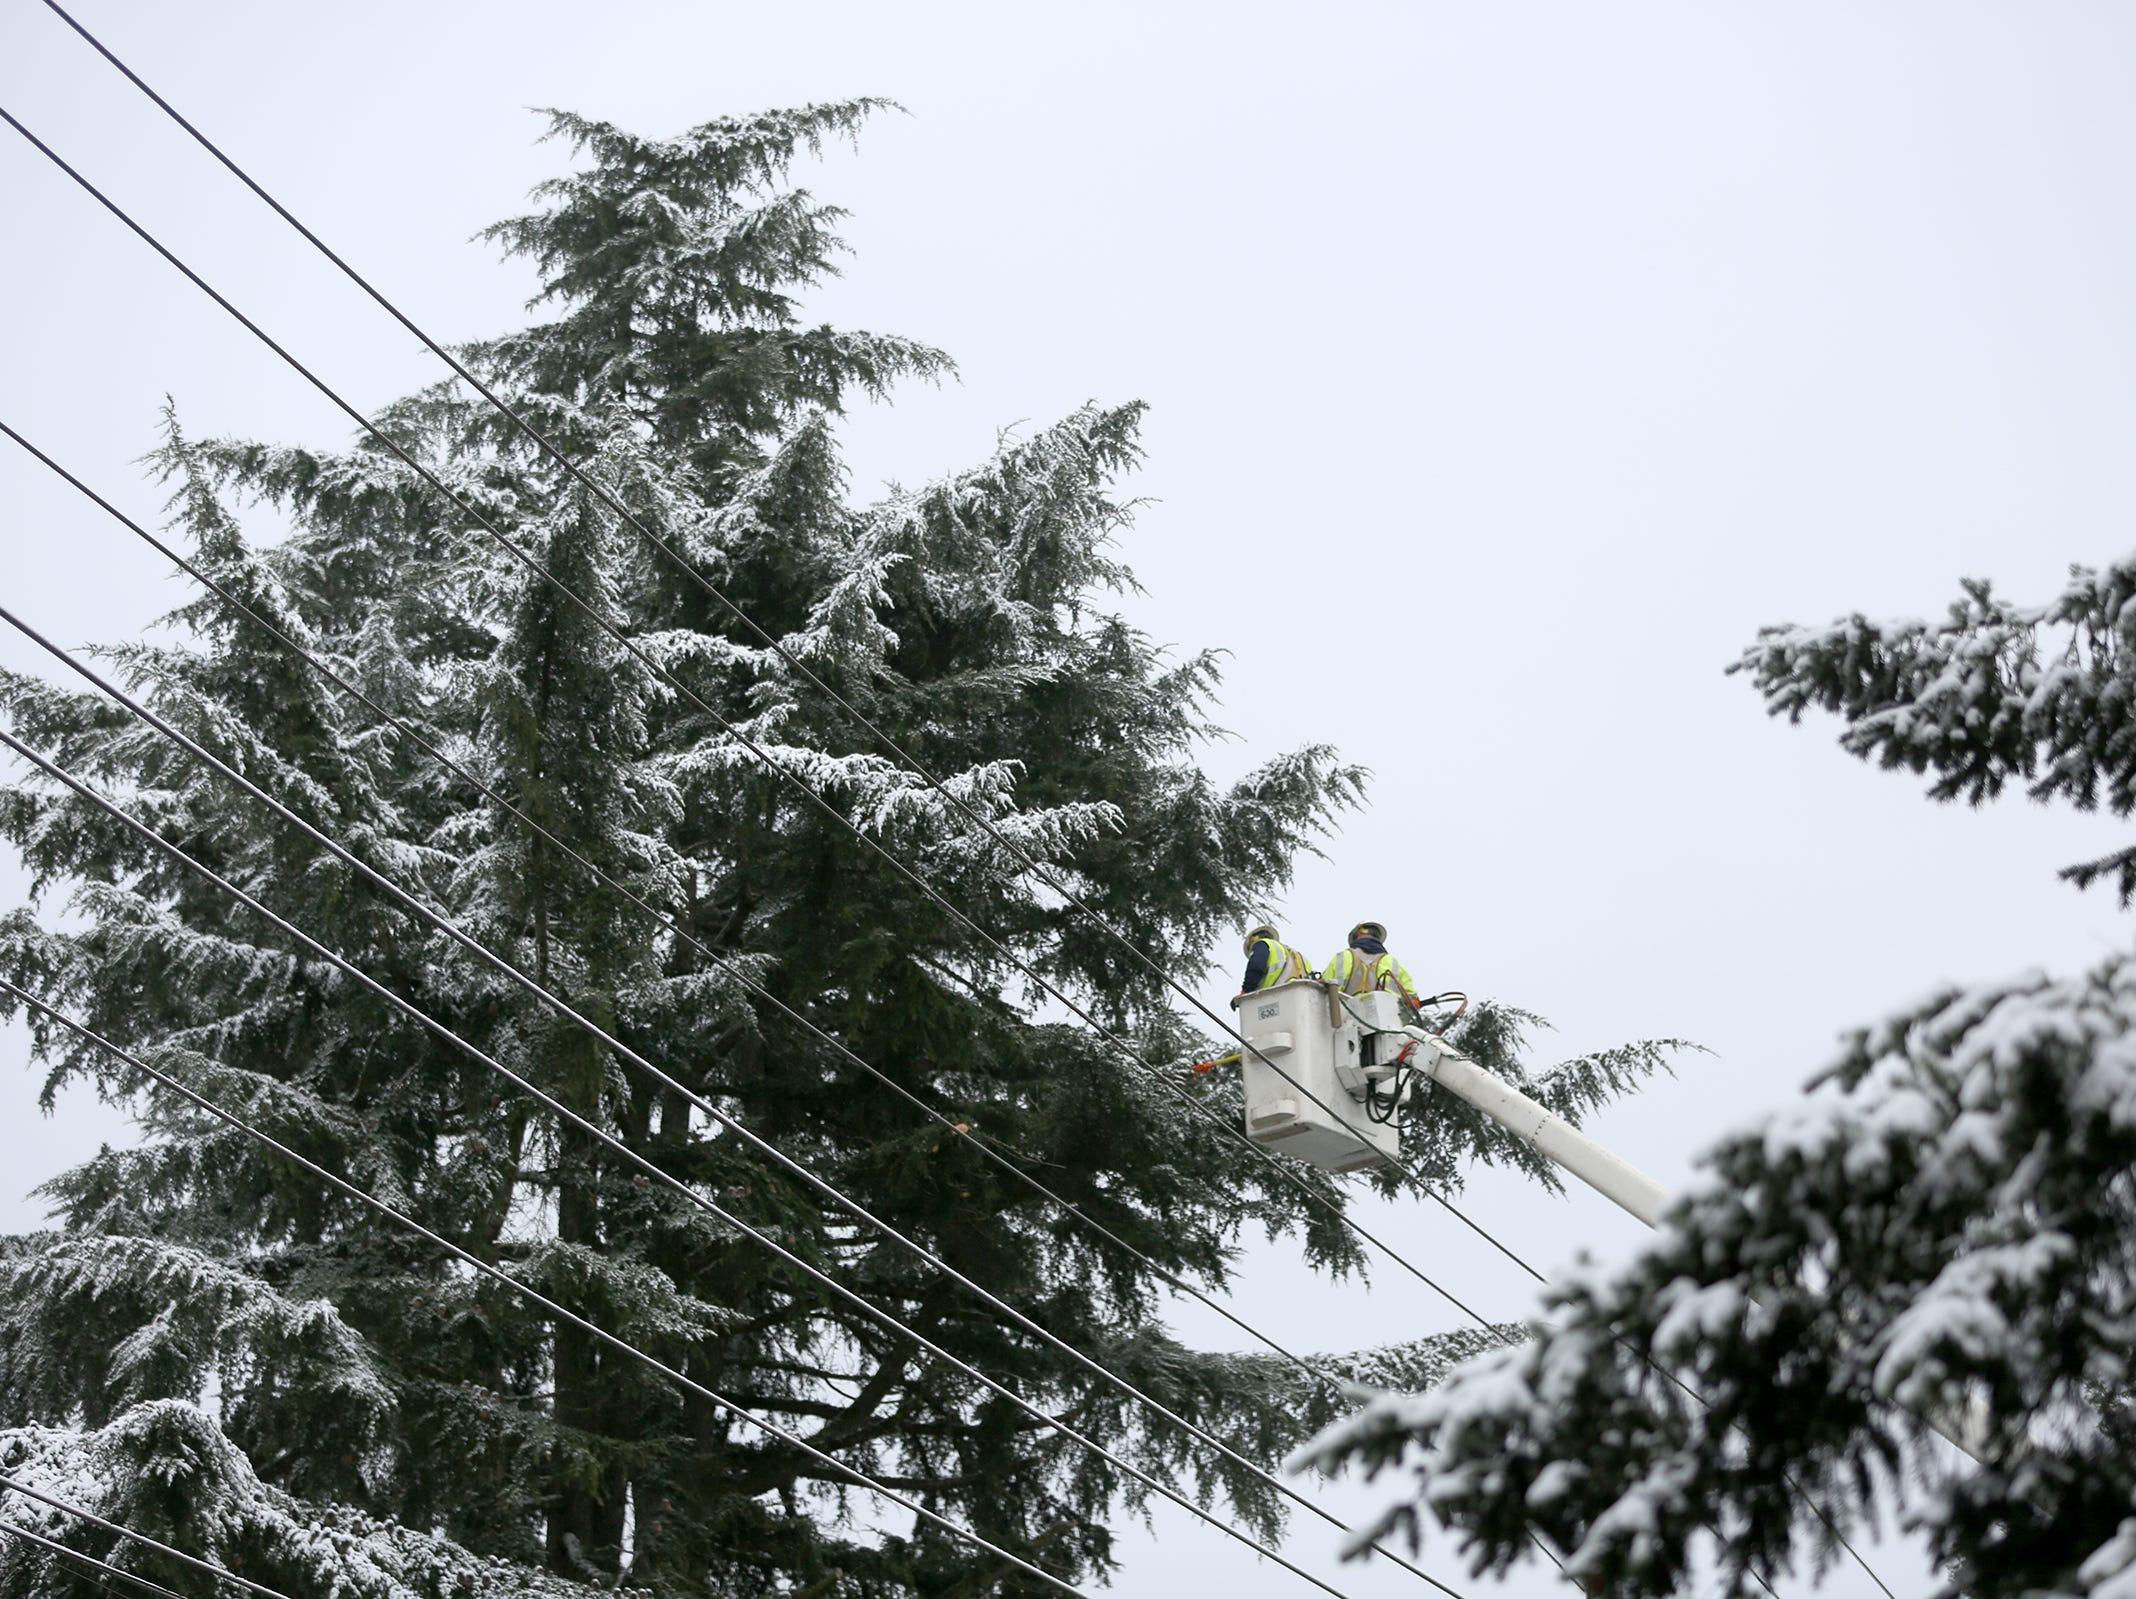 City workers trim tree branches growing close to electric wires in the snow on Tuesday, Feb. 5, 2019.